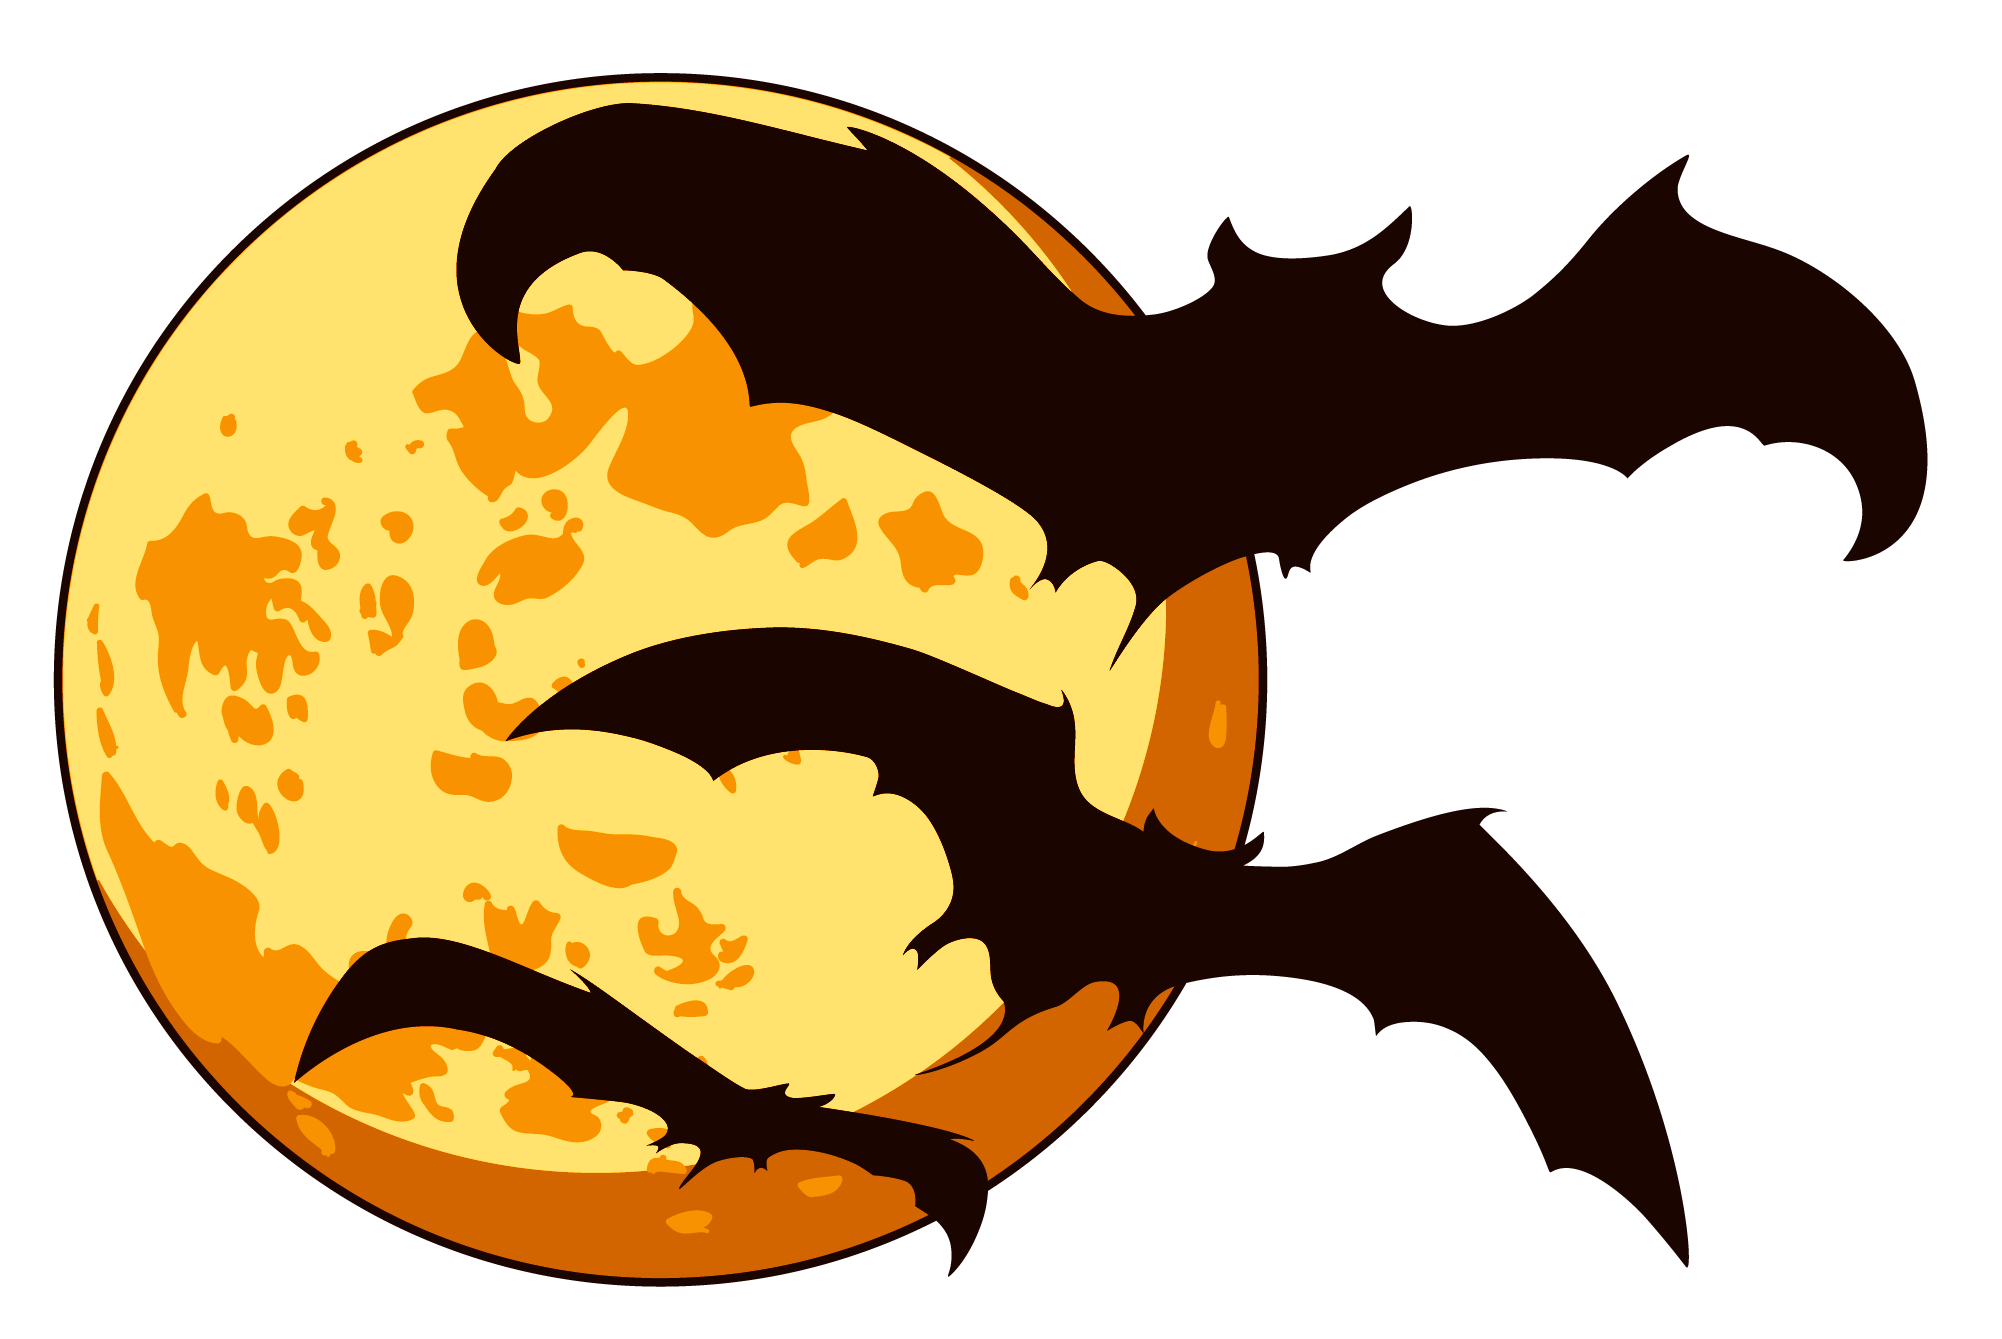 Halloween moon clipart black and white freeuse library Moon Festival Clipart at GetDrawings.com   Free for personal use ... freeuse library